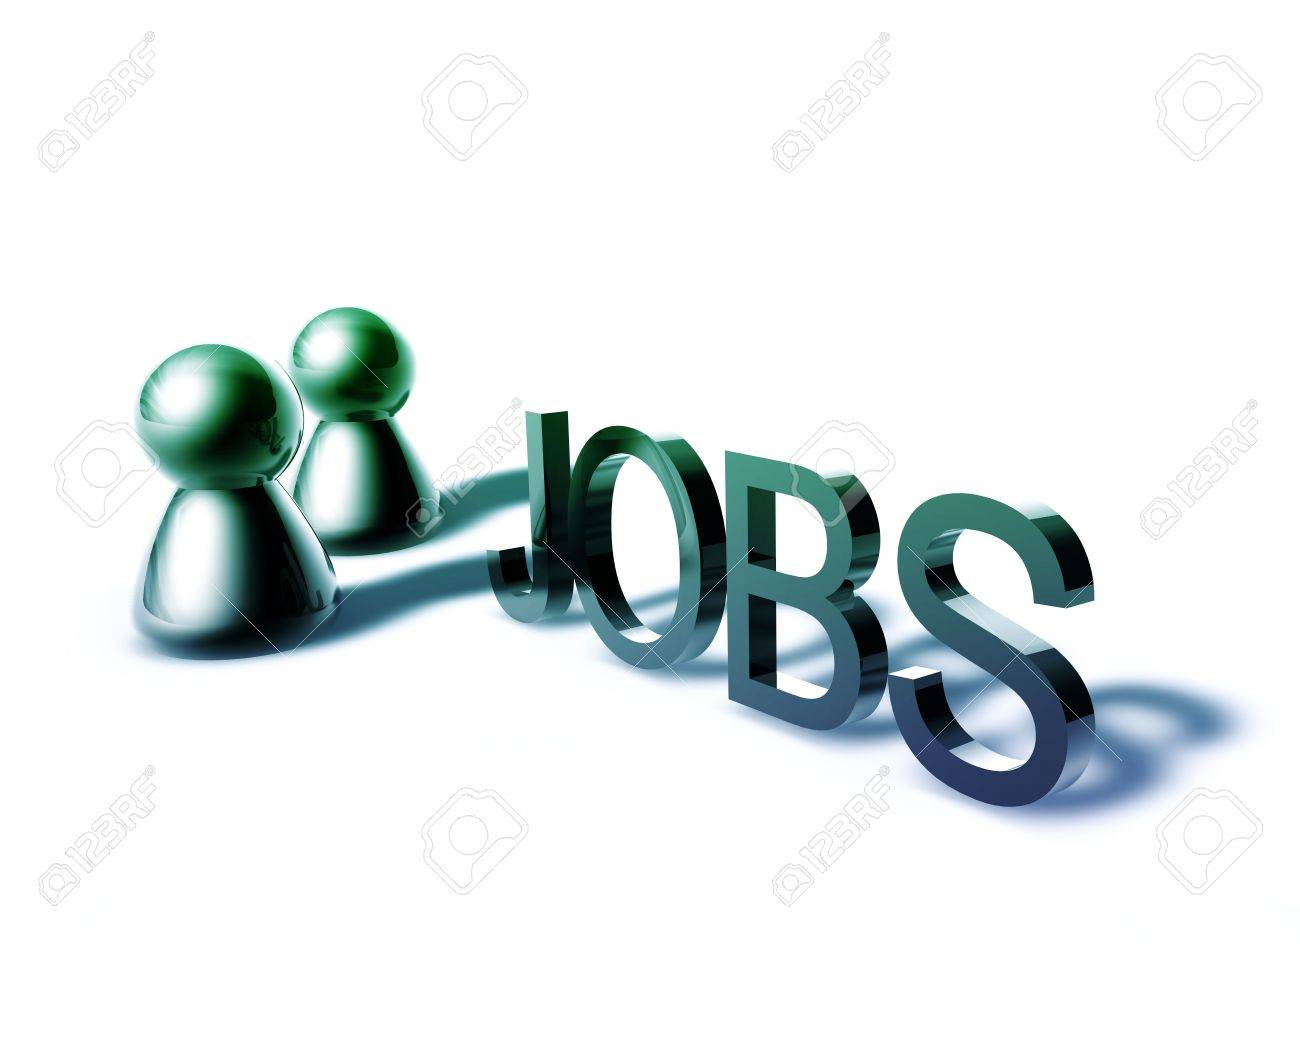 jobs online word graphic stylized people icons stock photo jobs online word graphic stylized people icons stock photo 6313631